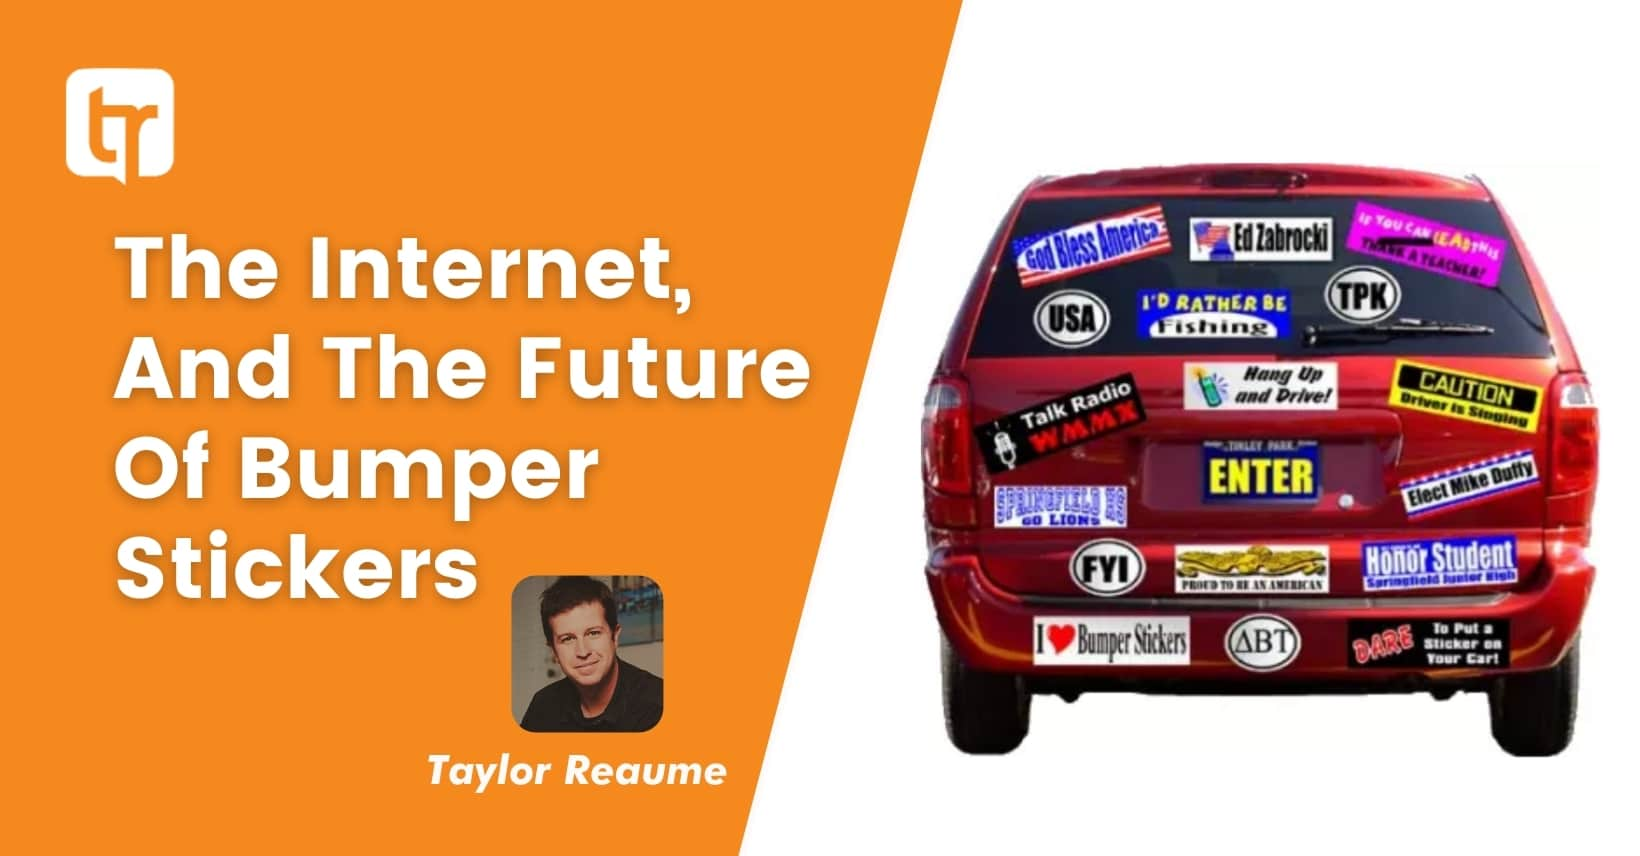 The Internet, And The Future Of Bumper Stickers